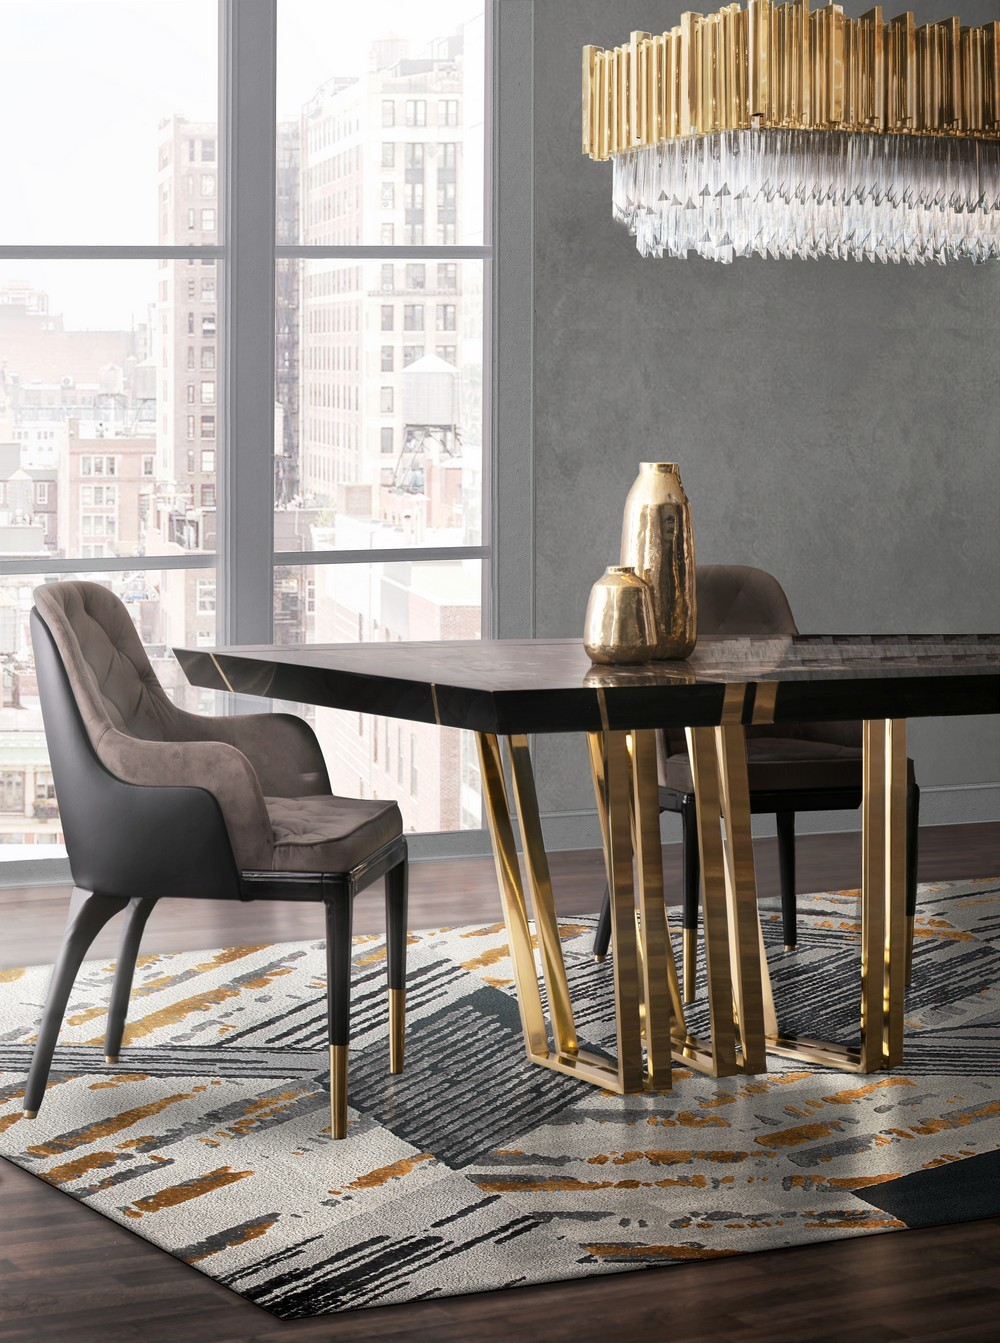 The Perfect Element For Stylish Settings: 10 Dining Tables You'll Love dining tables The Perfect Element For Stylish Settings: 25 Dining Tables You'll Love LX empire snooker 2